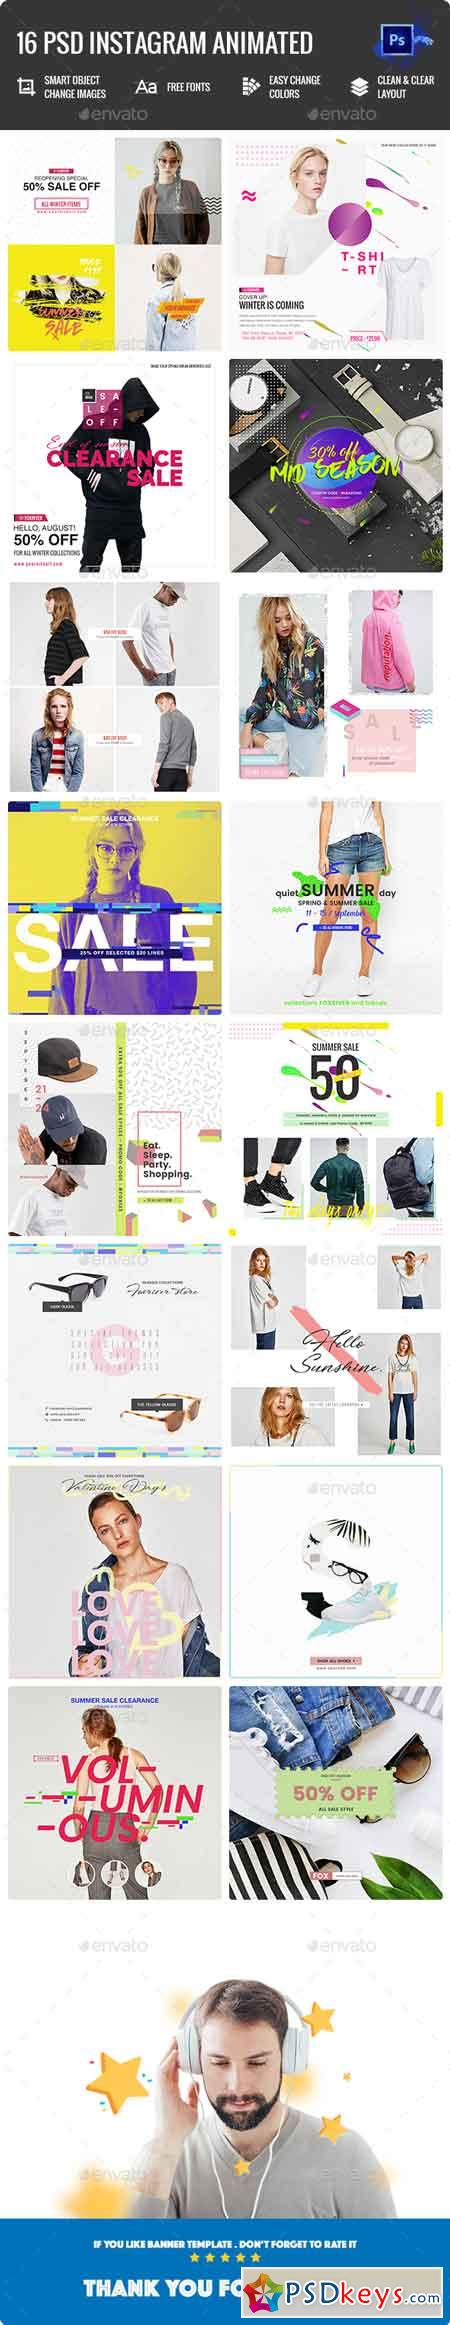 Fashion Instagram Animated Posts - 16 PSD 22540854